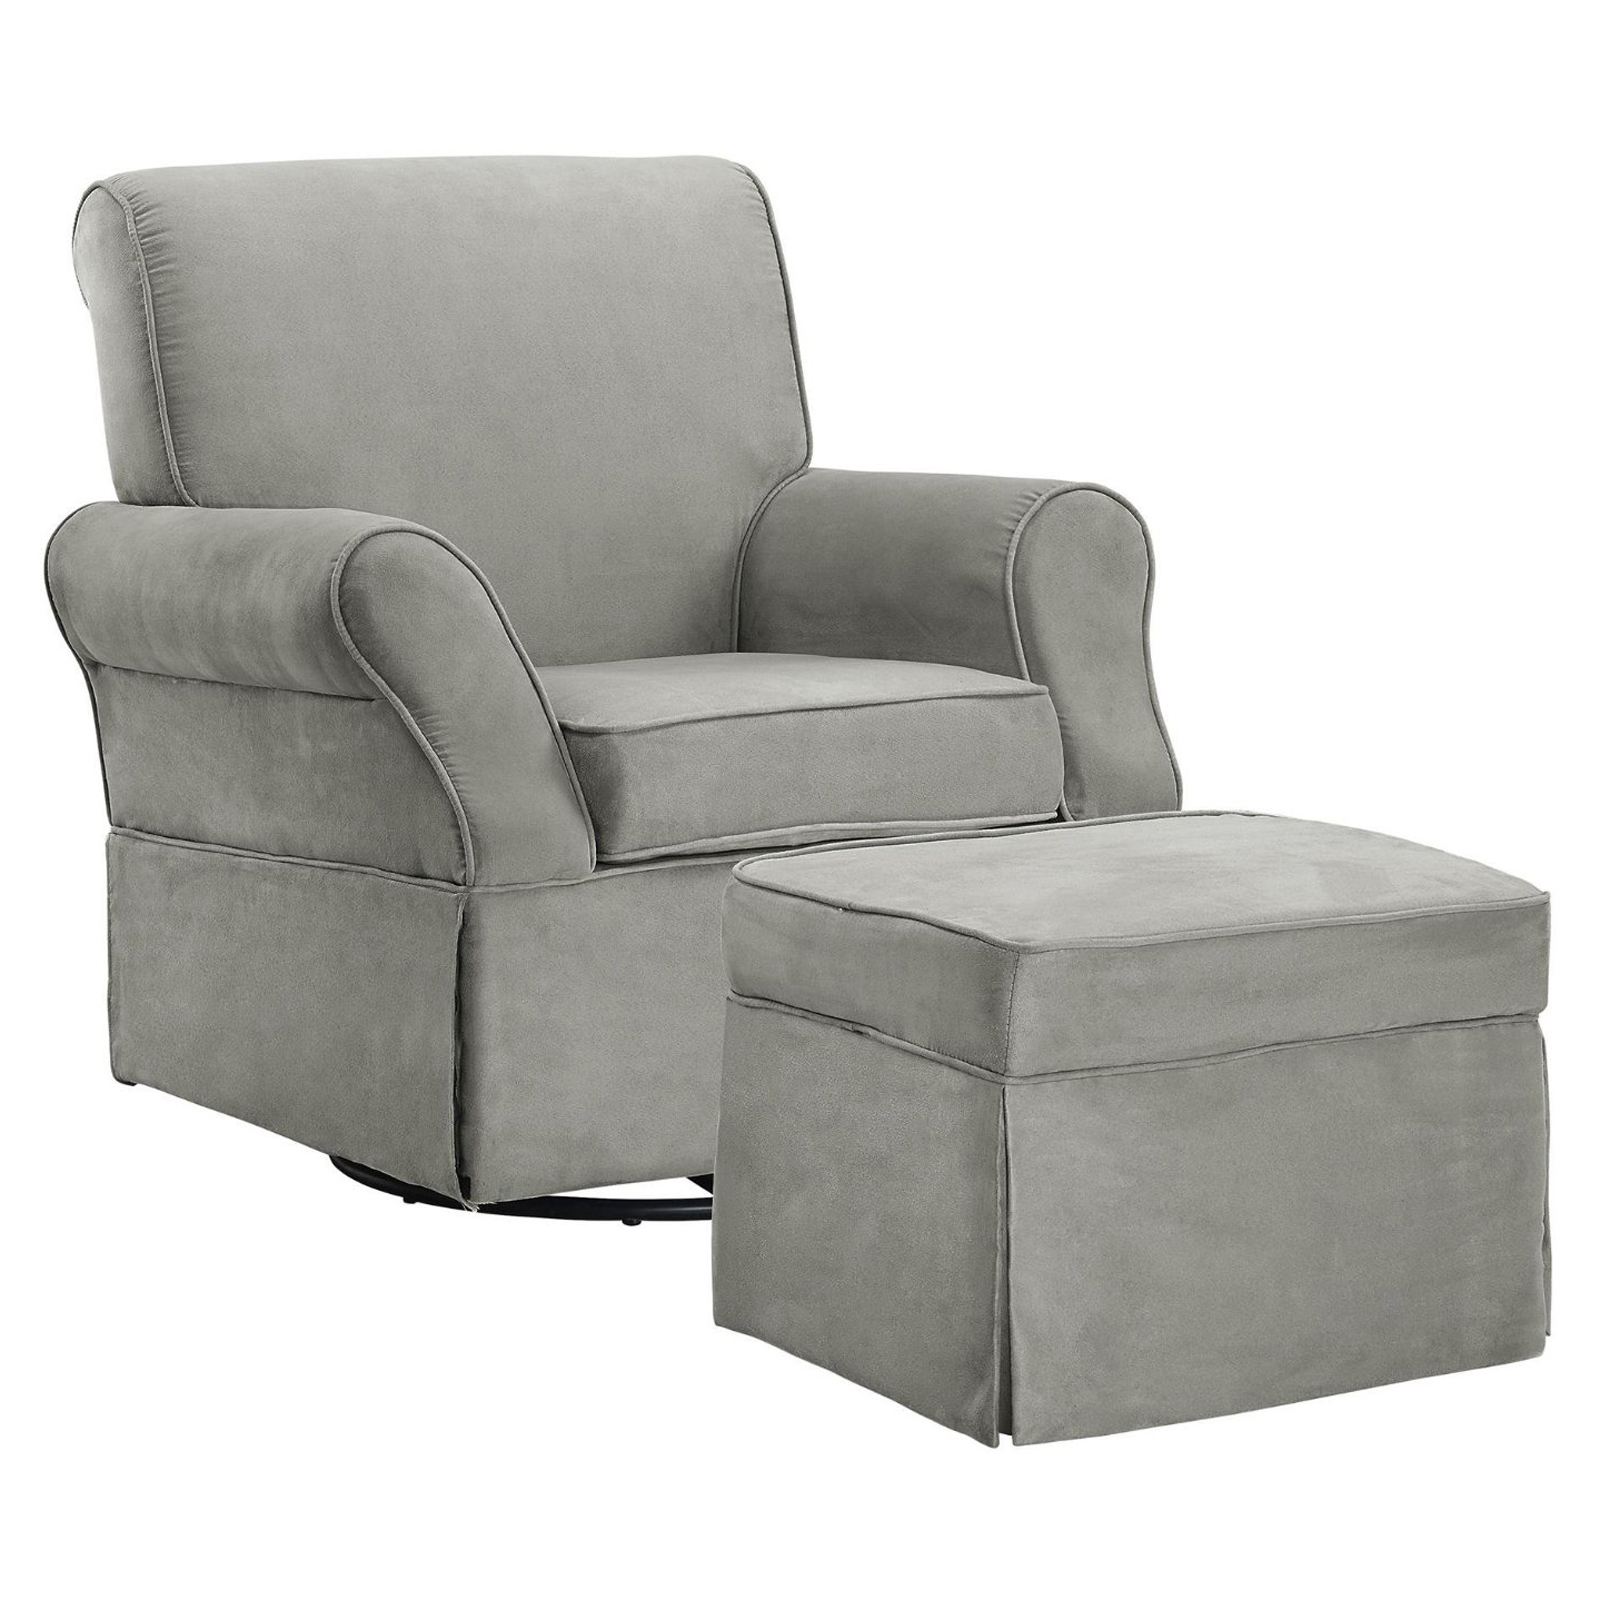 Baby Relax Kelcie Swivel Glider and Ottoman